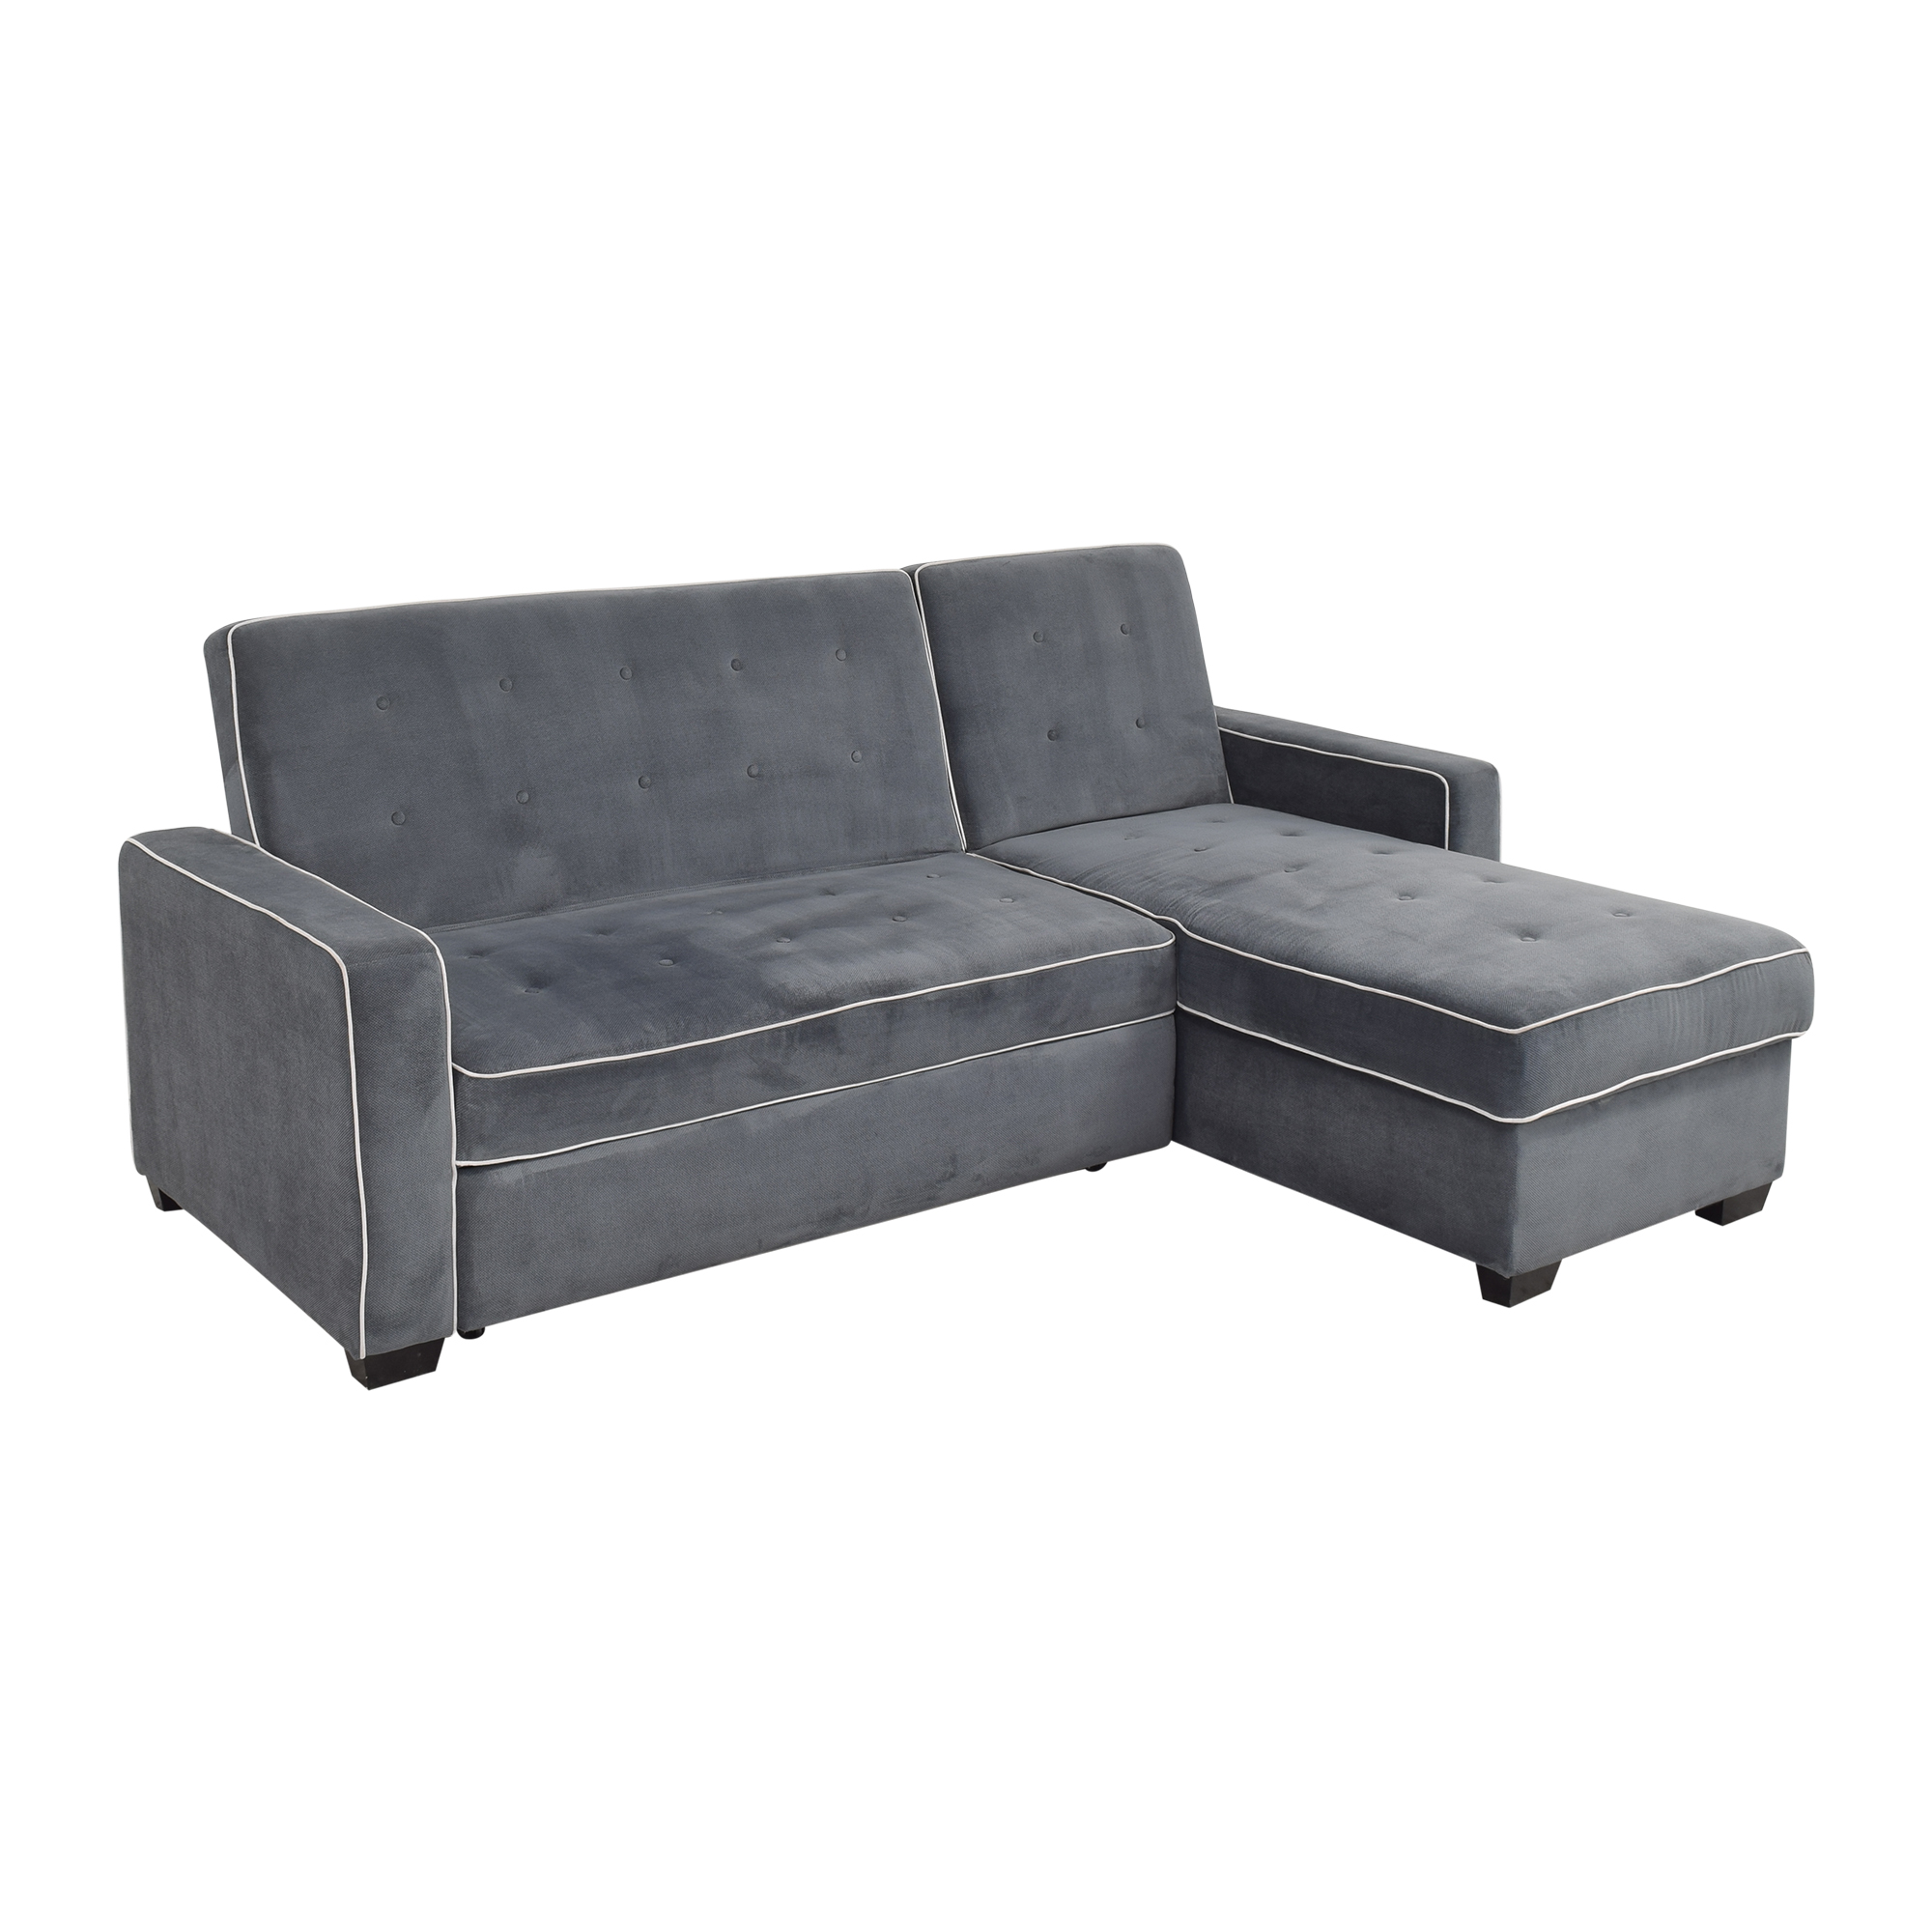 45 Off Costco Costco Kayden Chaise Sectional Sleeper Sofa Sofas